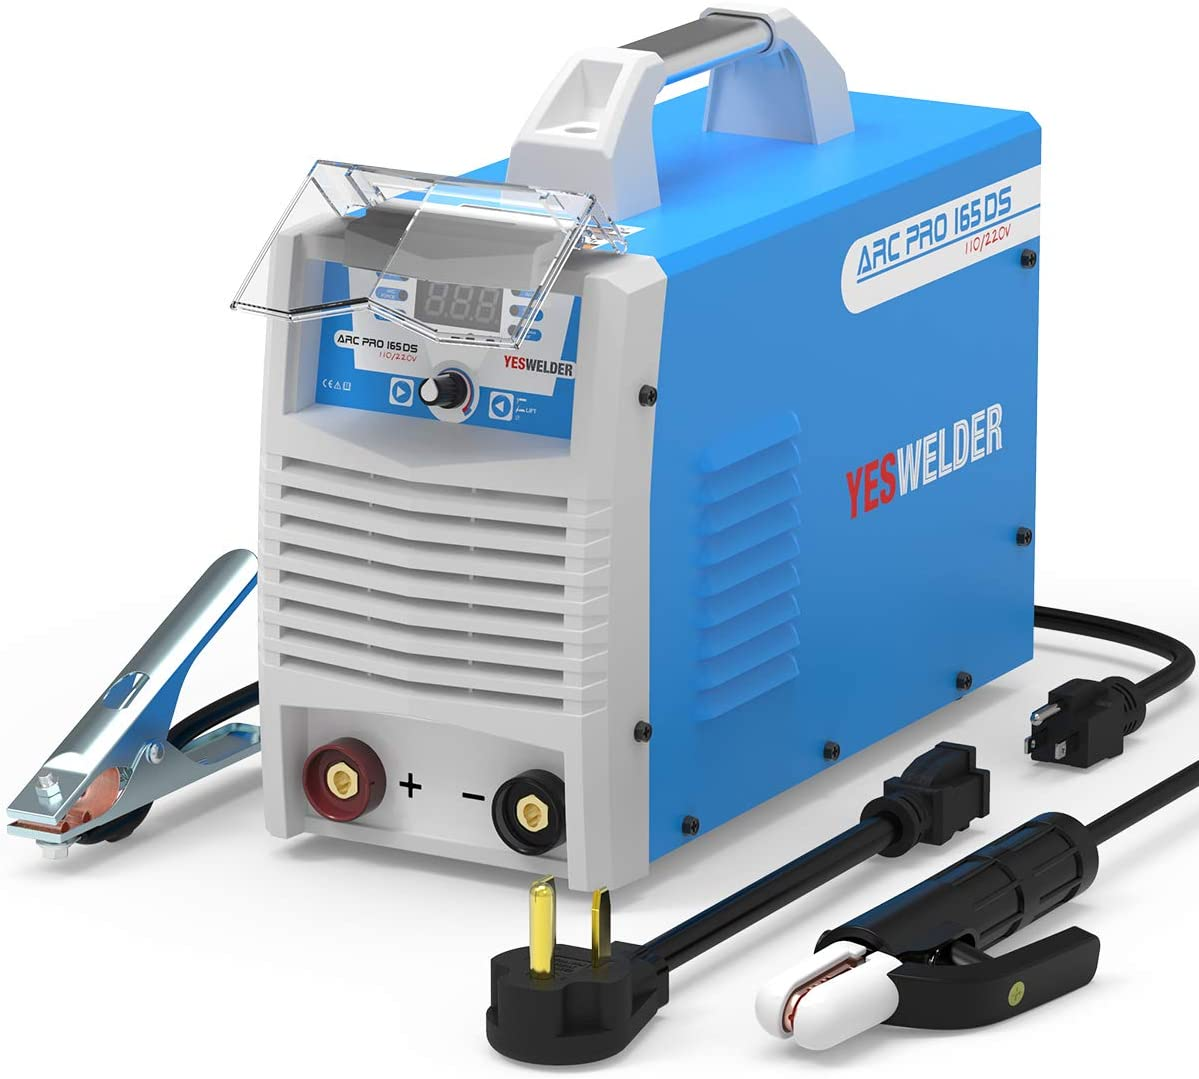 Simple Wiring Diagram And Installation Of Arc Welding Machine from images-na.ssl-images-amazon.com